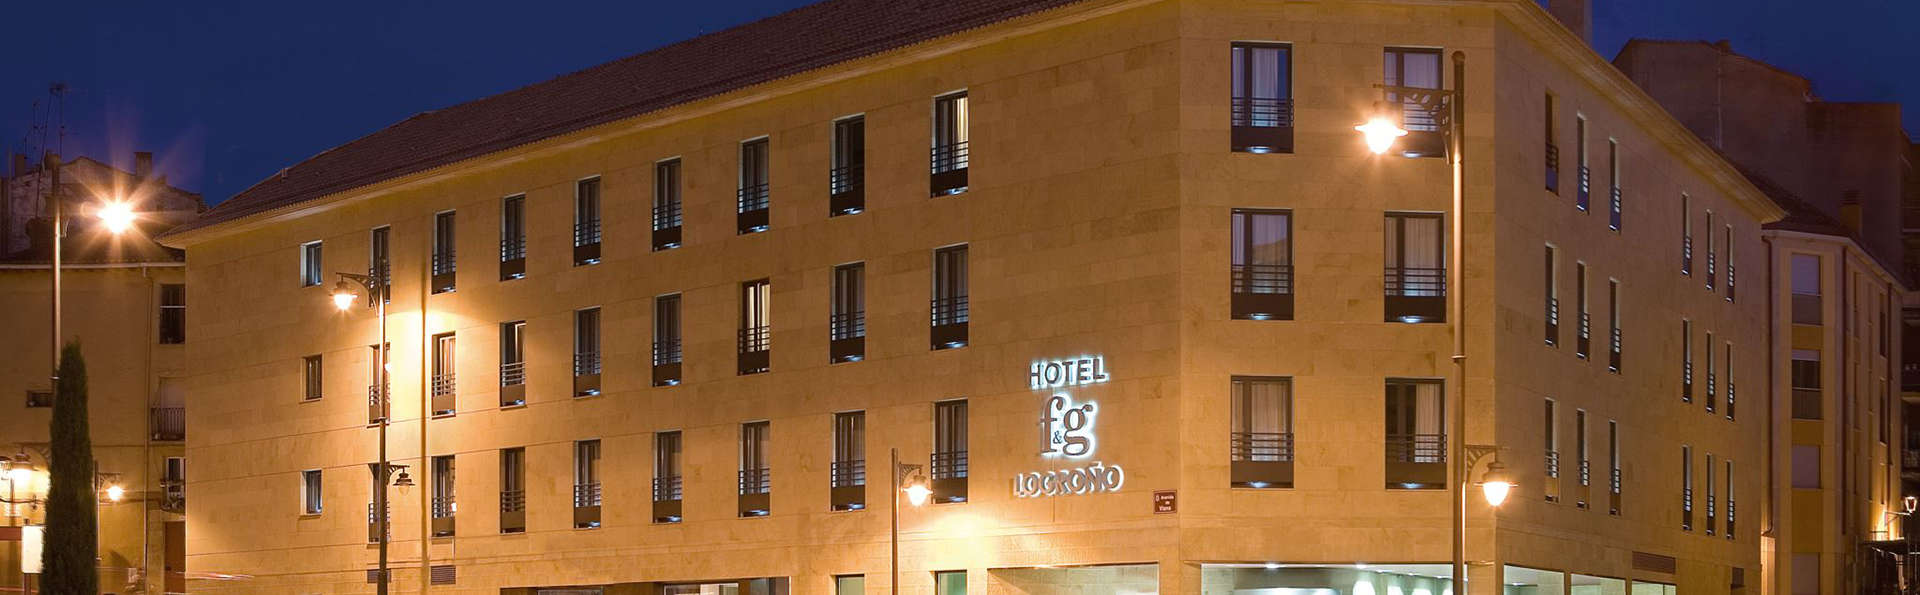 Hotel FG Logroño - edit_front_night.jpg